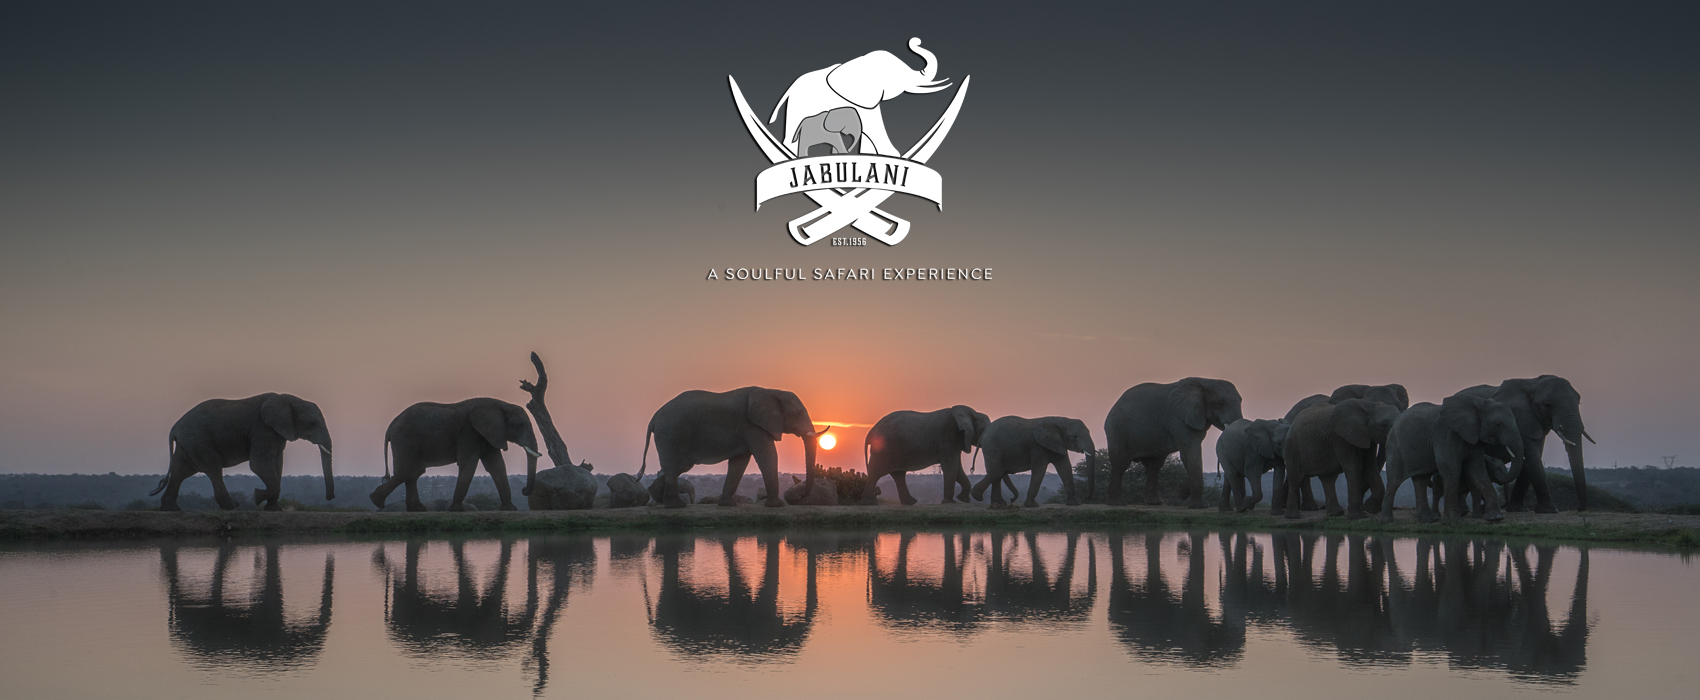 Jabulani_Safari-Special-Product-Page